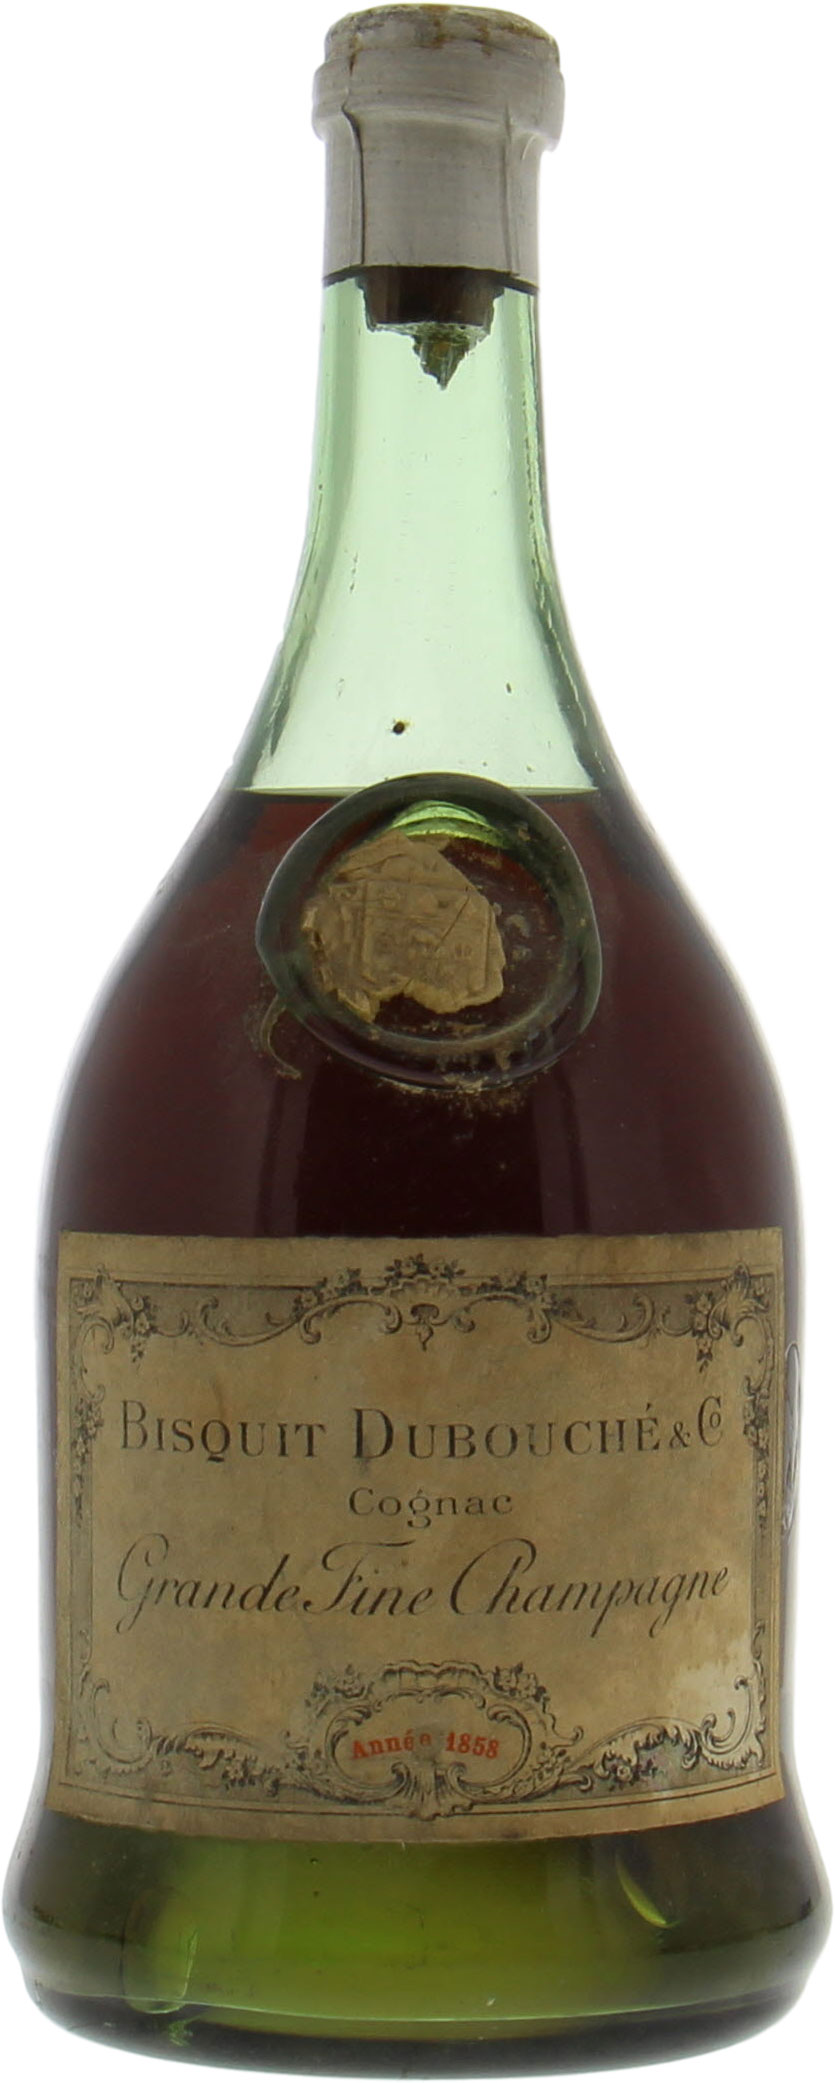 Image of Bisquit Dubouche Co Cognac Grande Fine Champagne